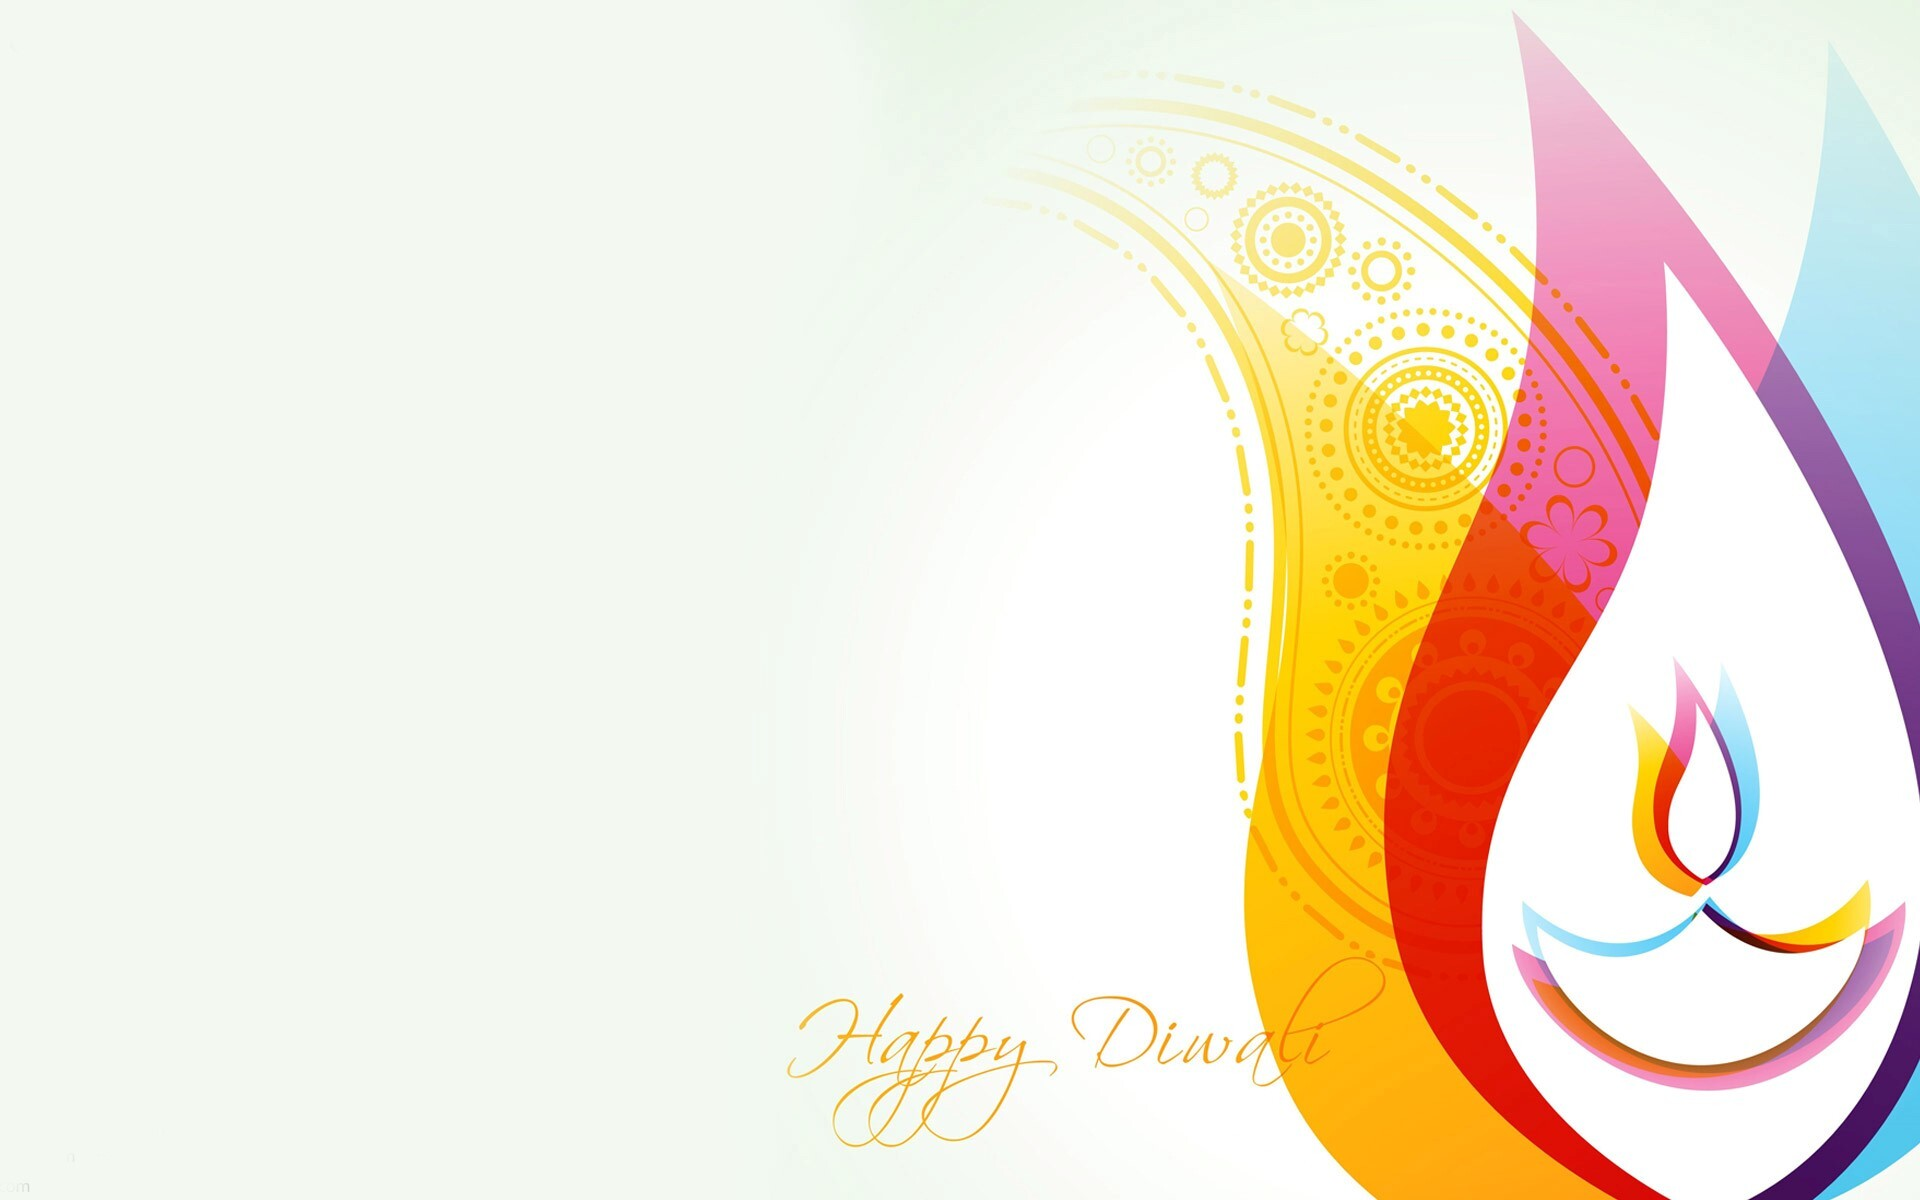 Beautiful Happy Diwali Greetings Card Wallpaper Free Download Hd